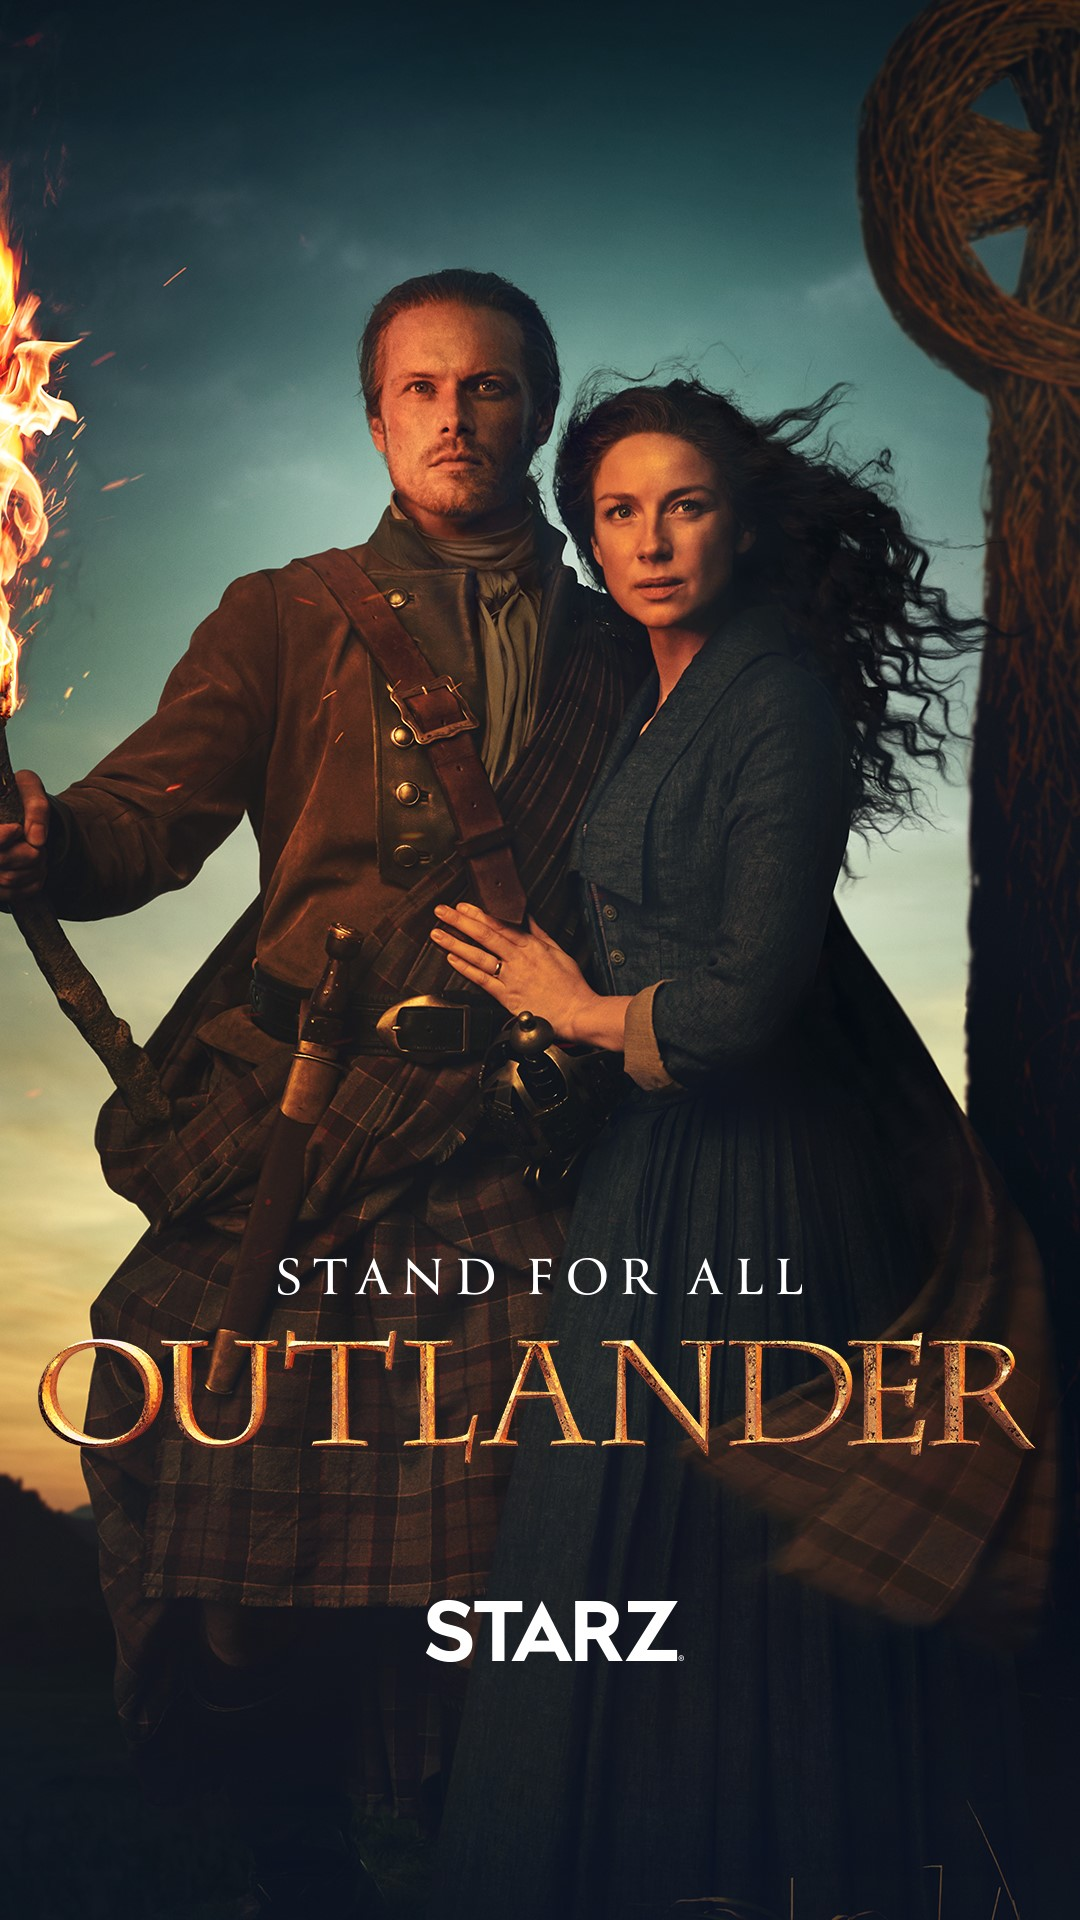 Outlander.S05E01.REAL.REPACK.720p.WEB.H264-GHOSTS